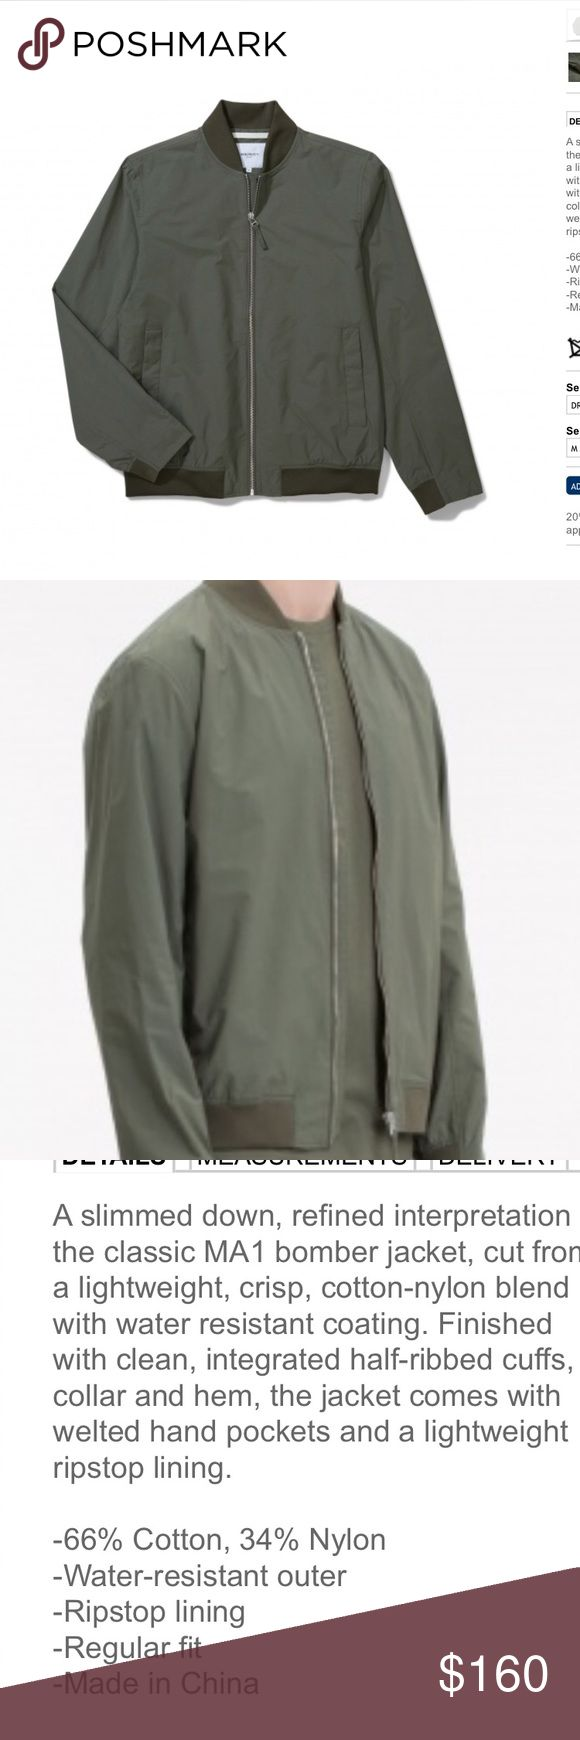 Norse Men's Bomber Jacket Olive/military green bomber style jacket. Never worn with tags. Slim fit. From Denmark. Sold on JCrew for $350 Norse Projects Jackets & Coats Bomber & Varsity